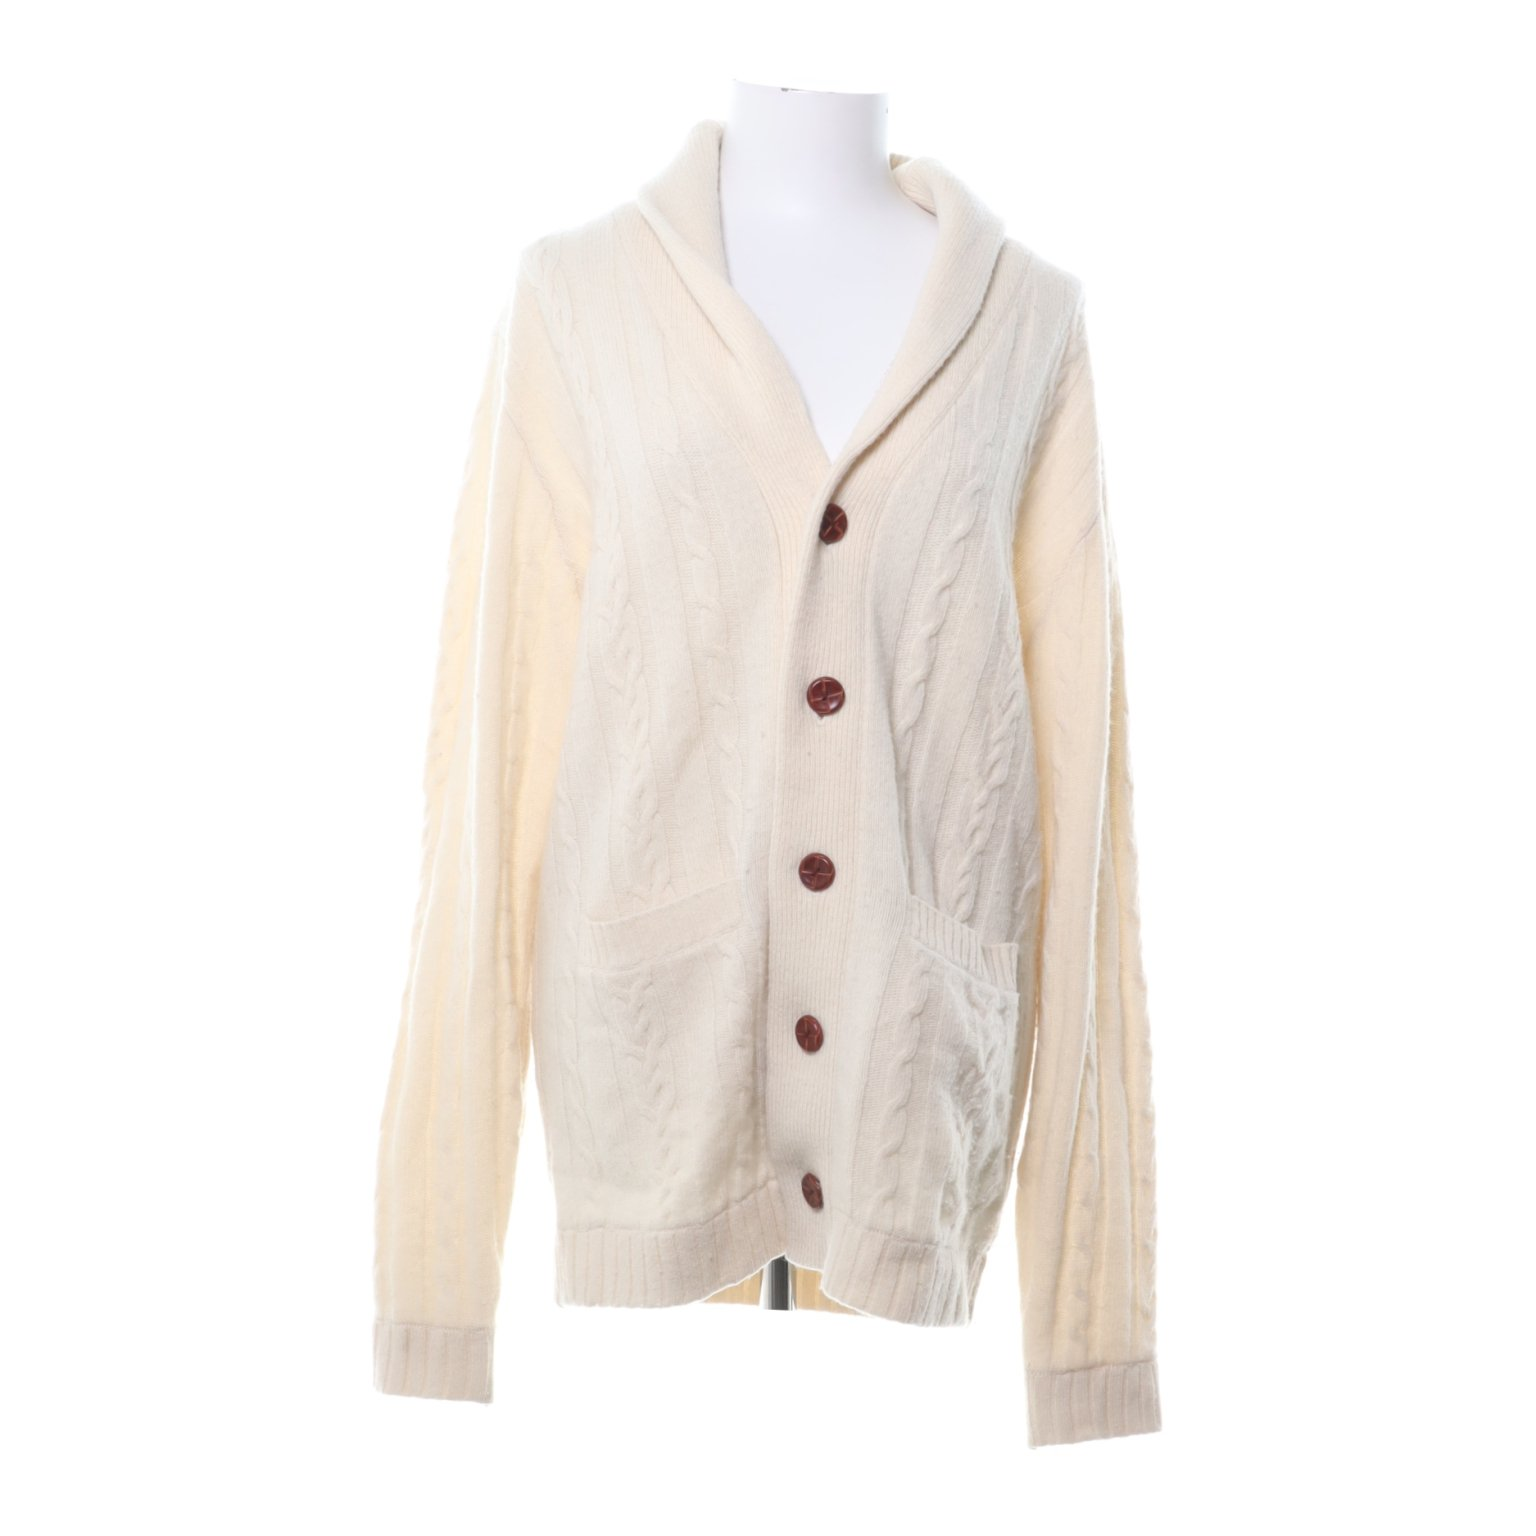 These Glory Days, Cardigan, Strl: L, Benvit, Ull/Nylon